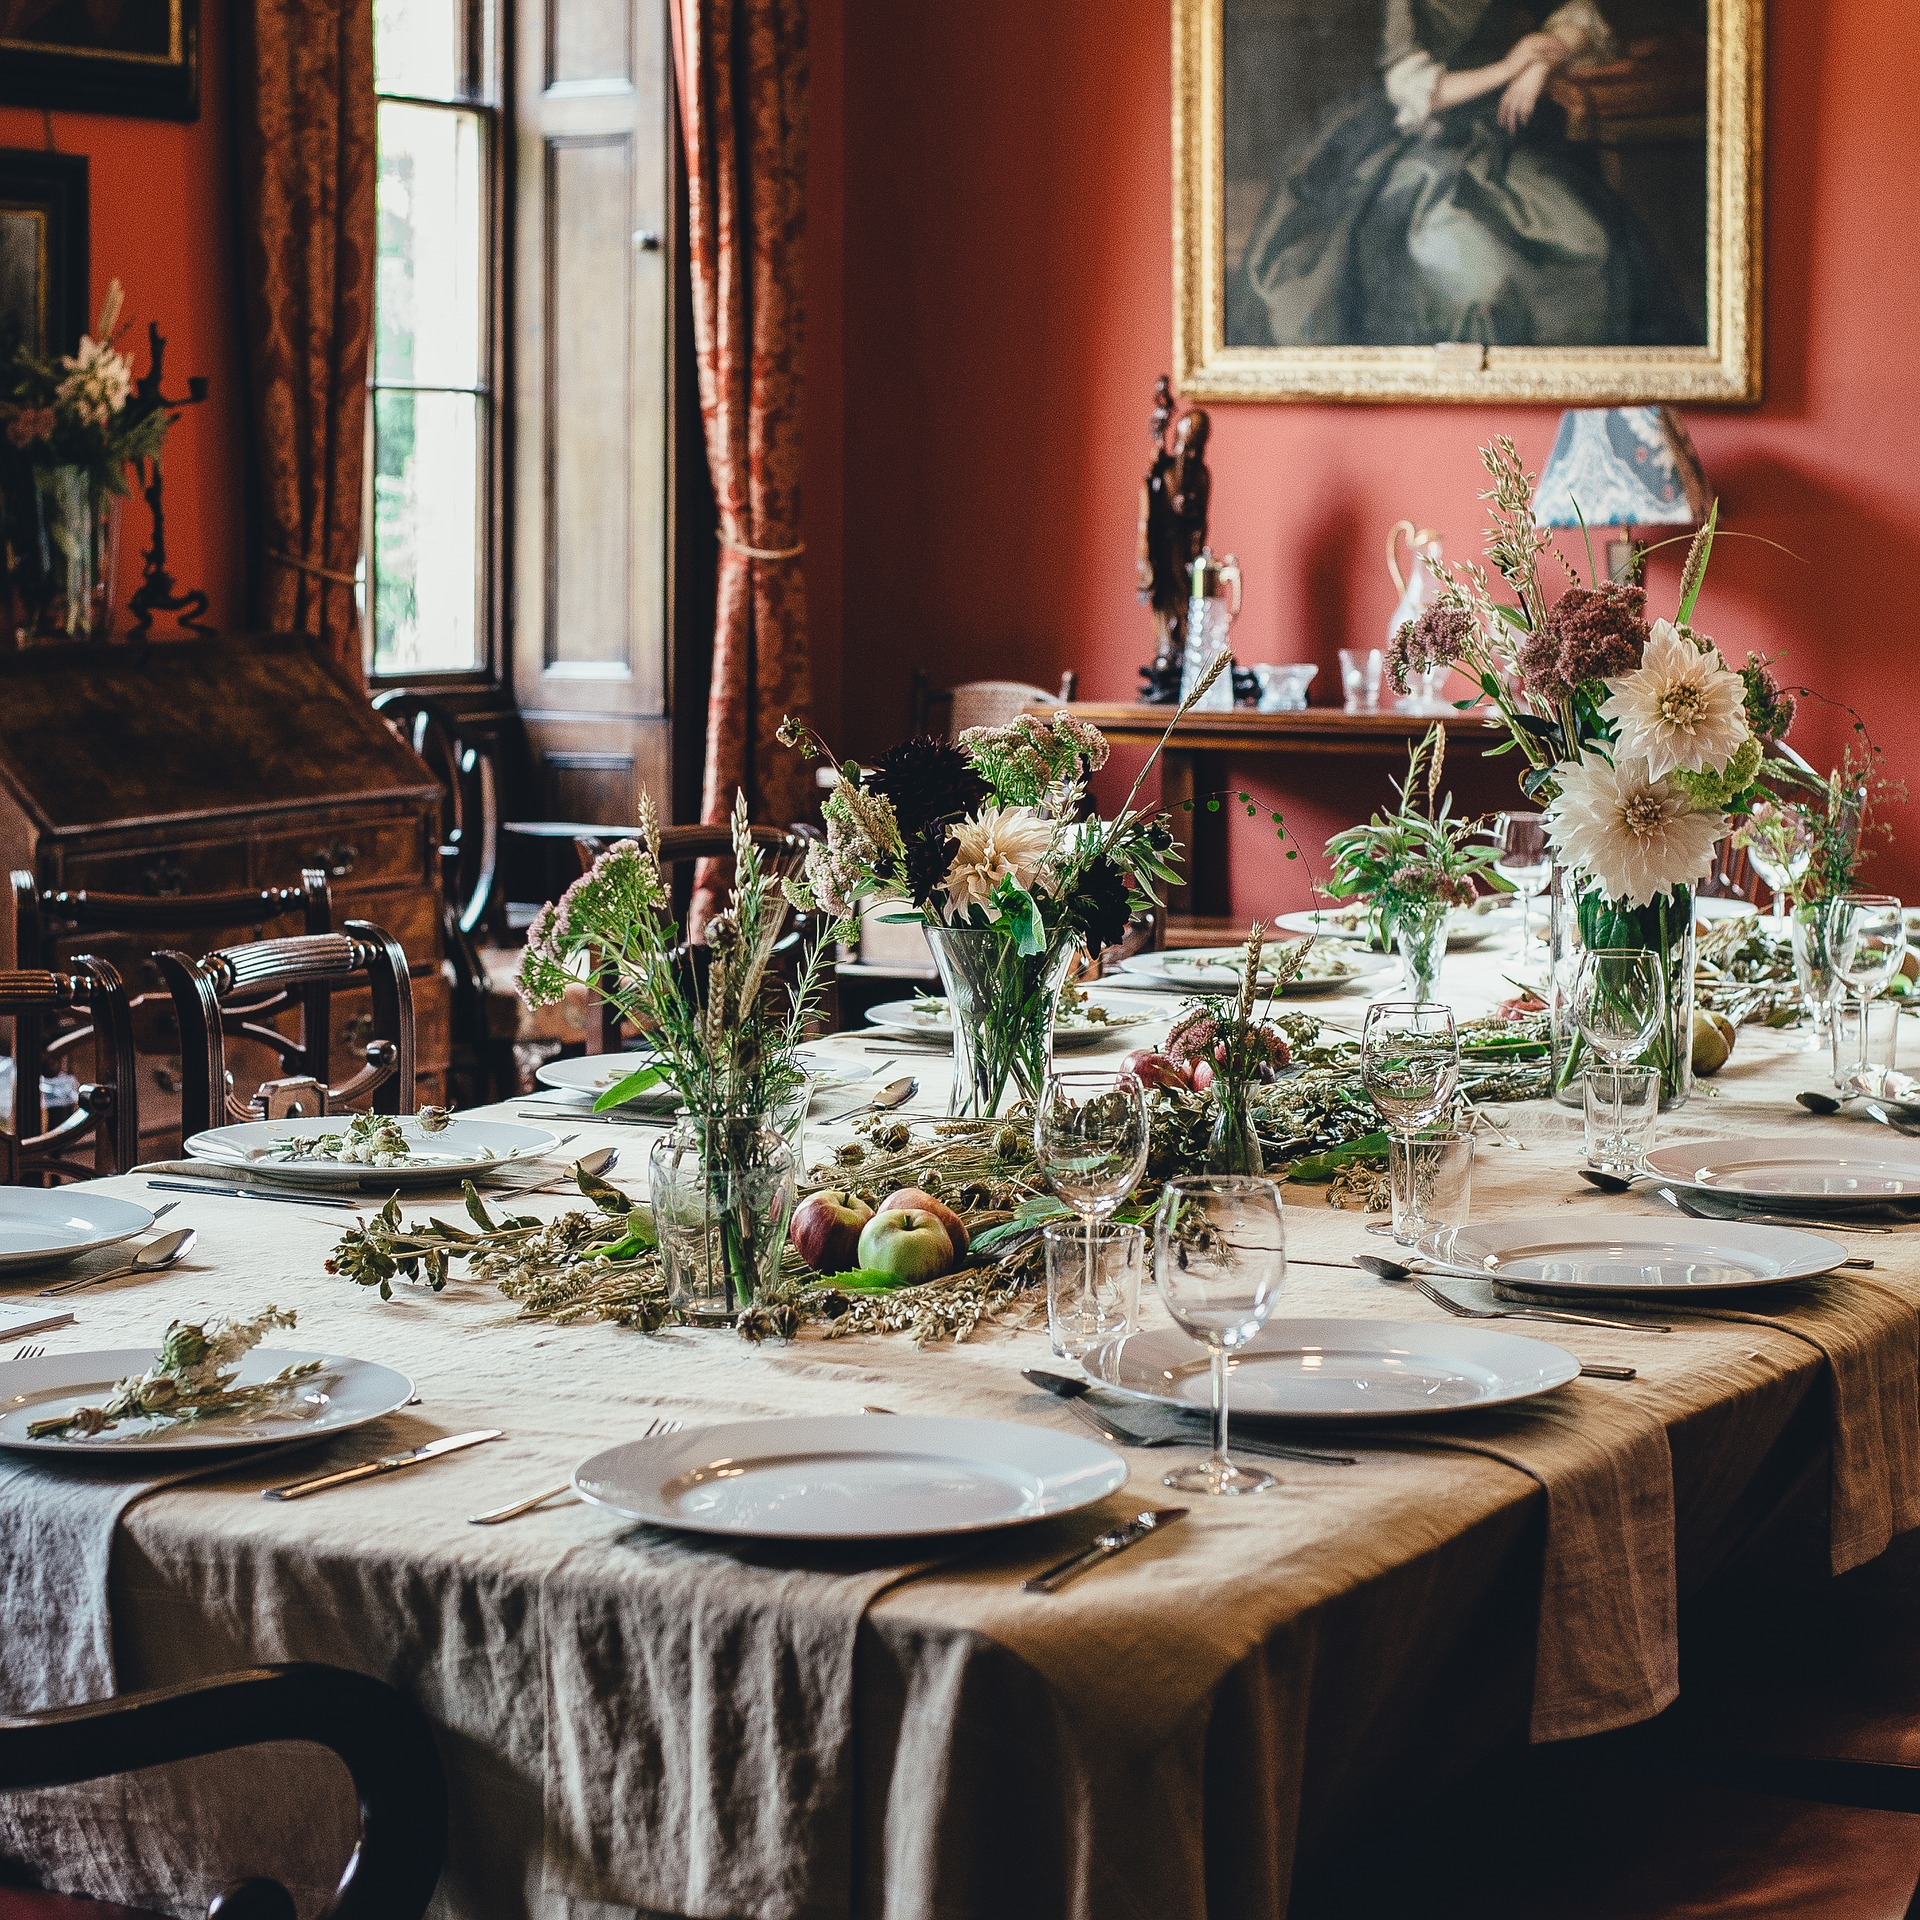 decorative dining table setting